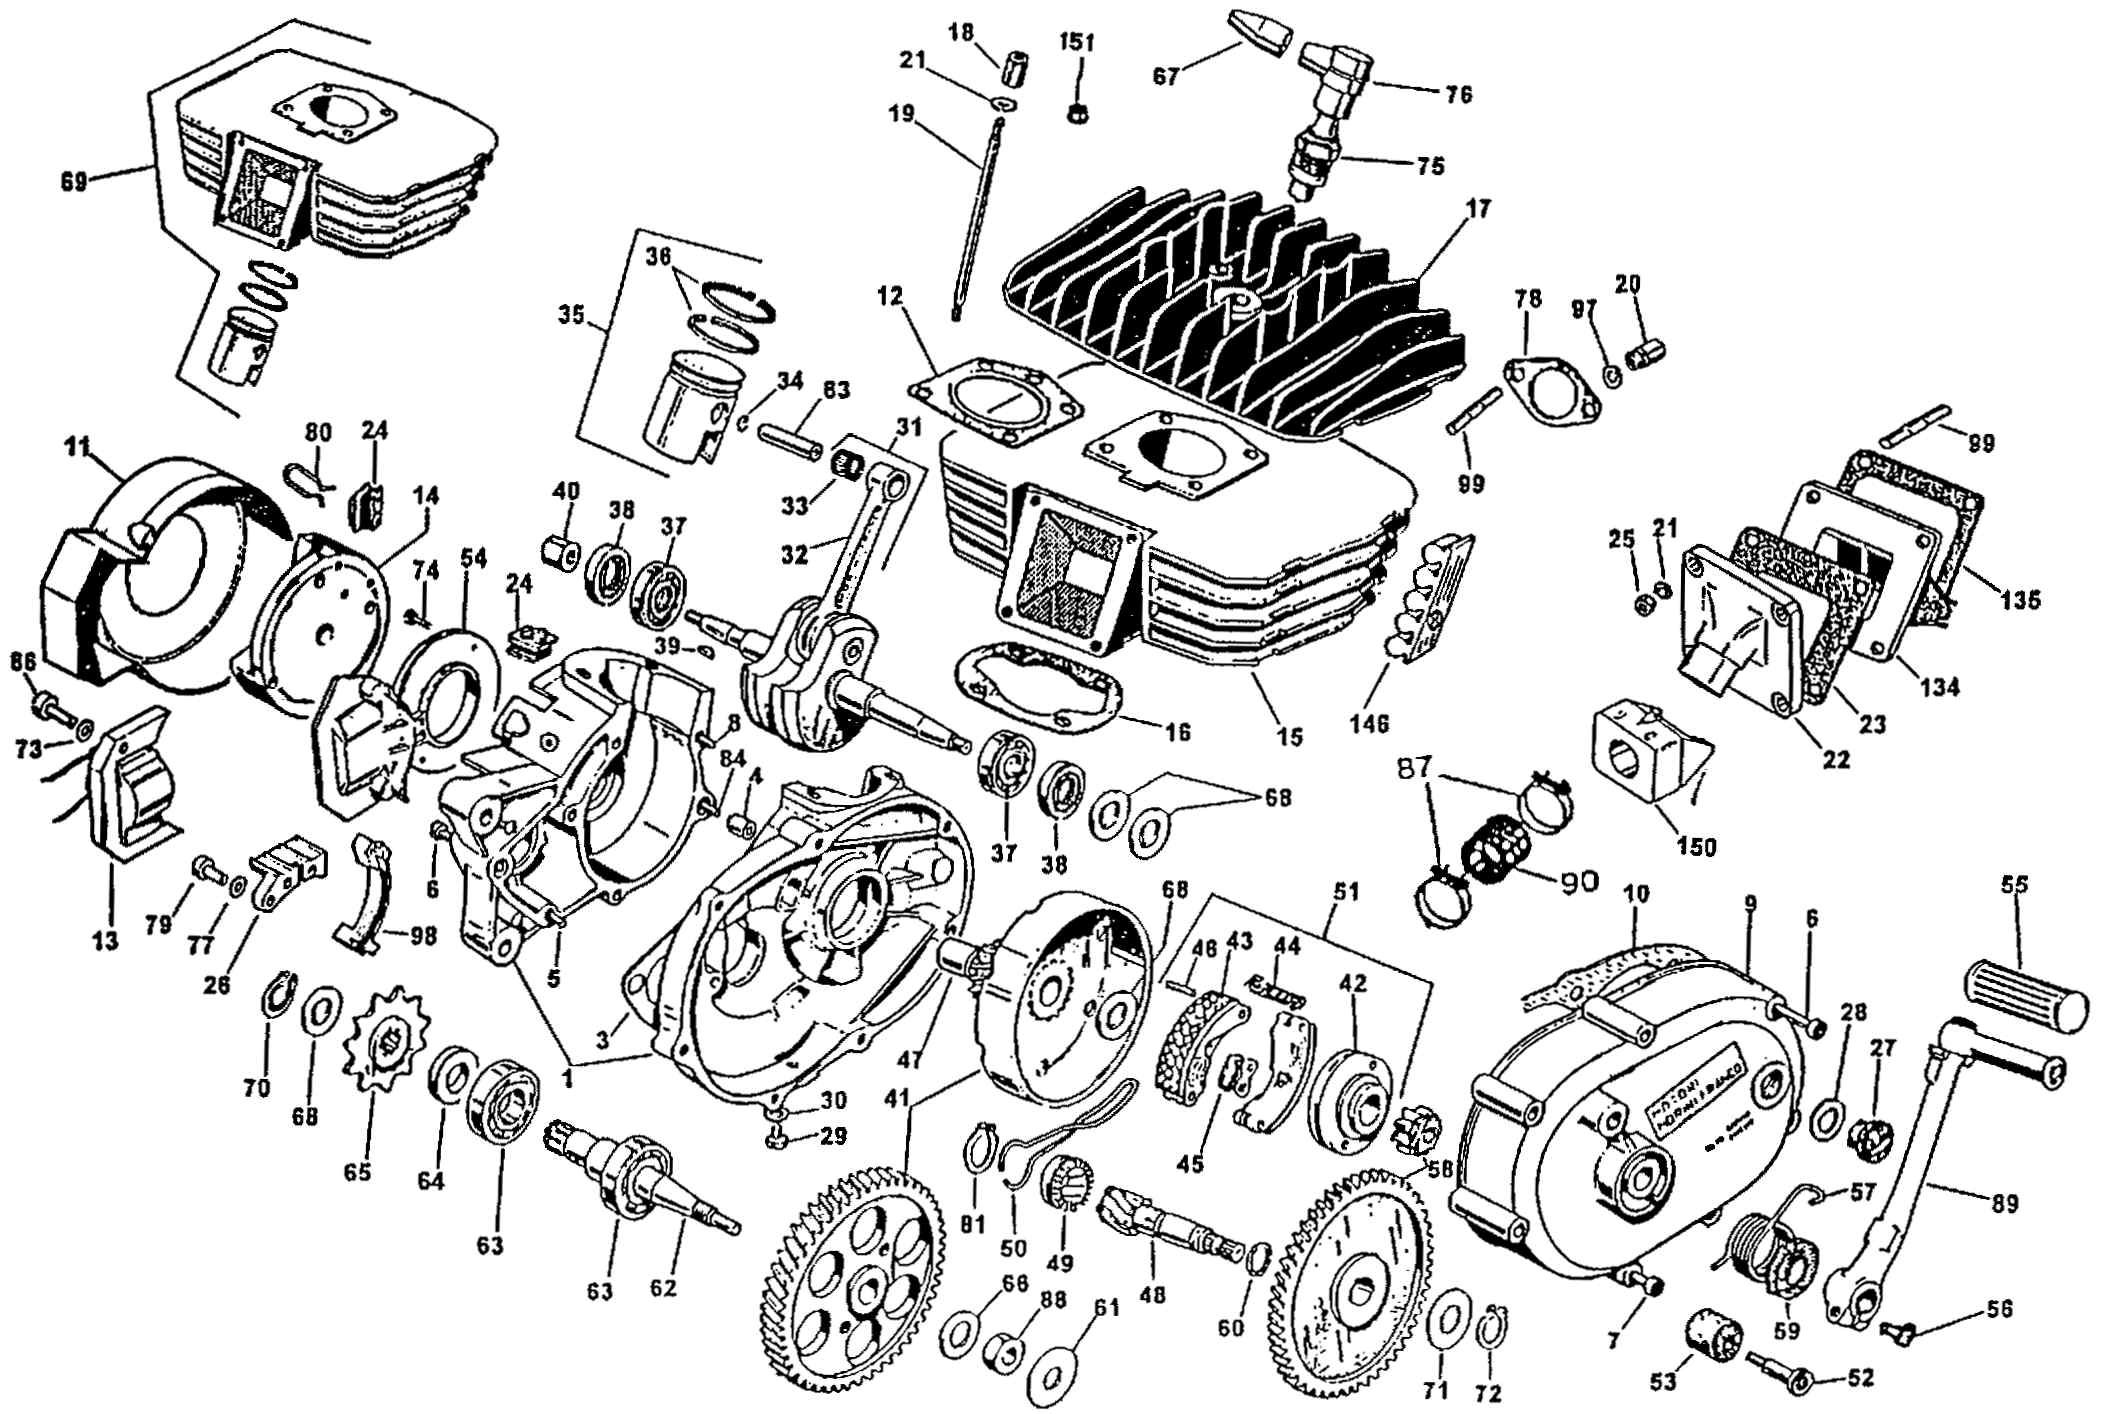 small bike engine diagram